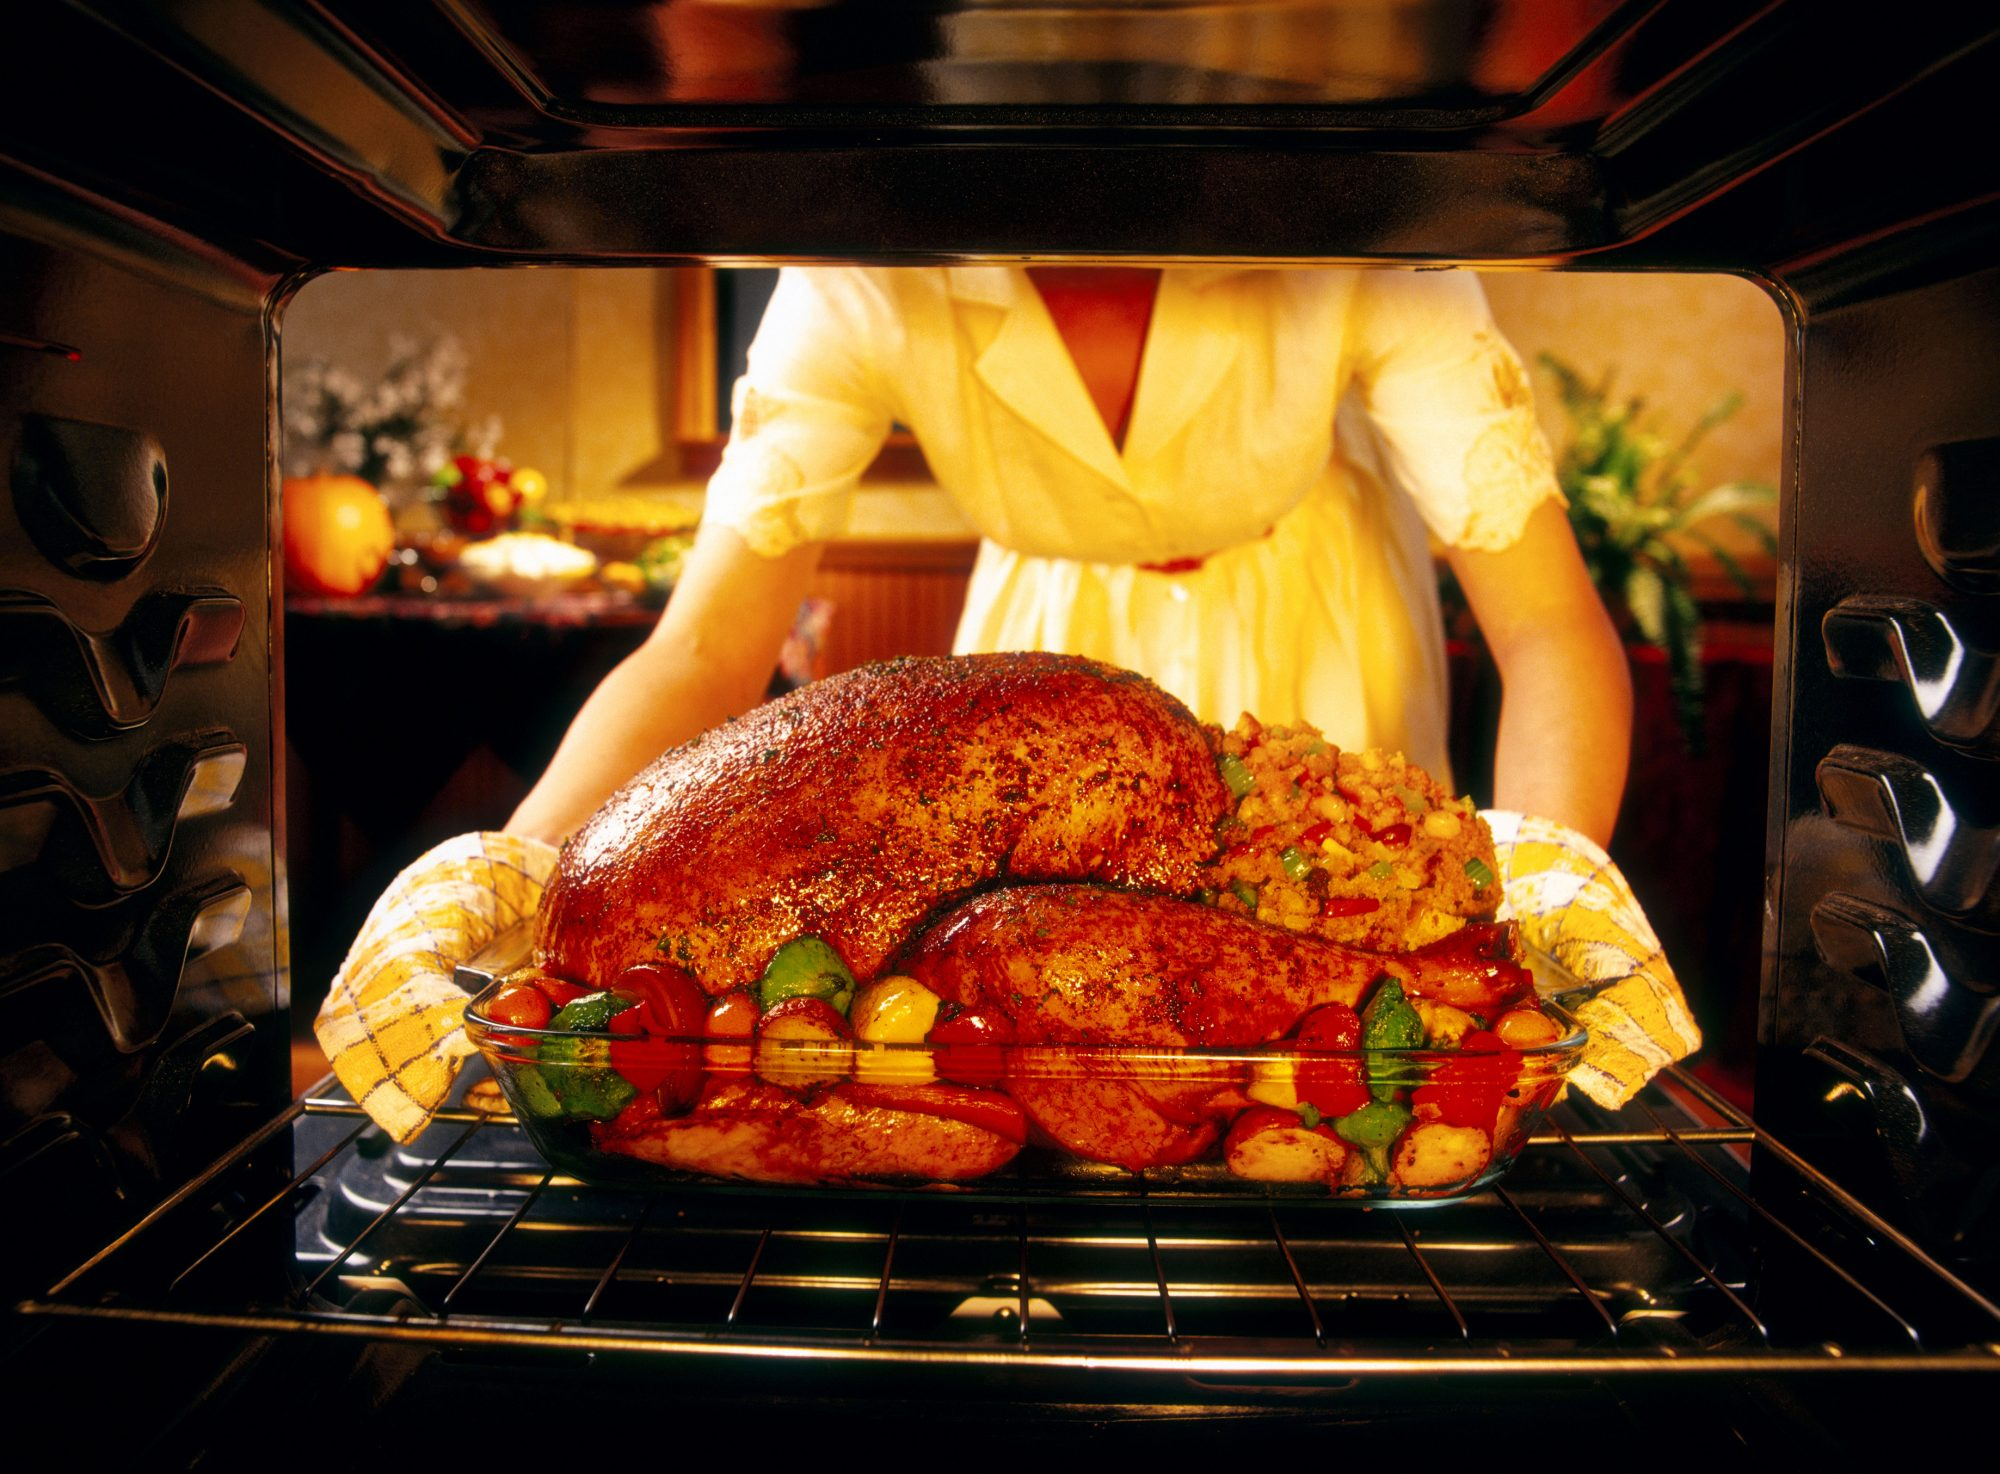 getty holiday cooking image